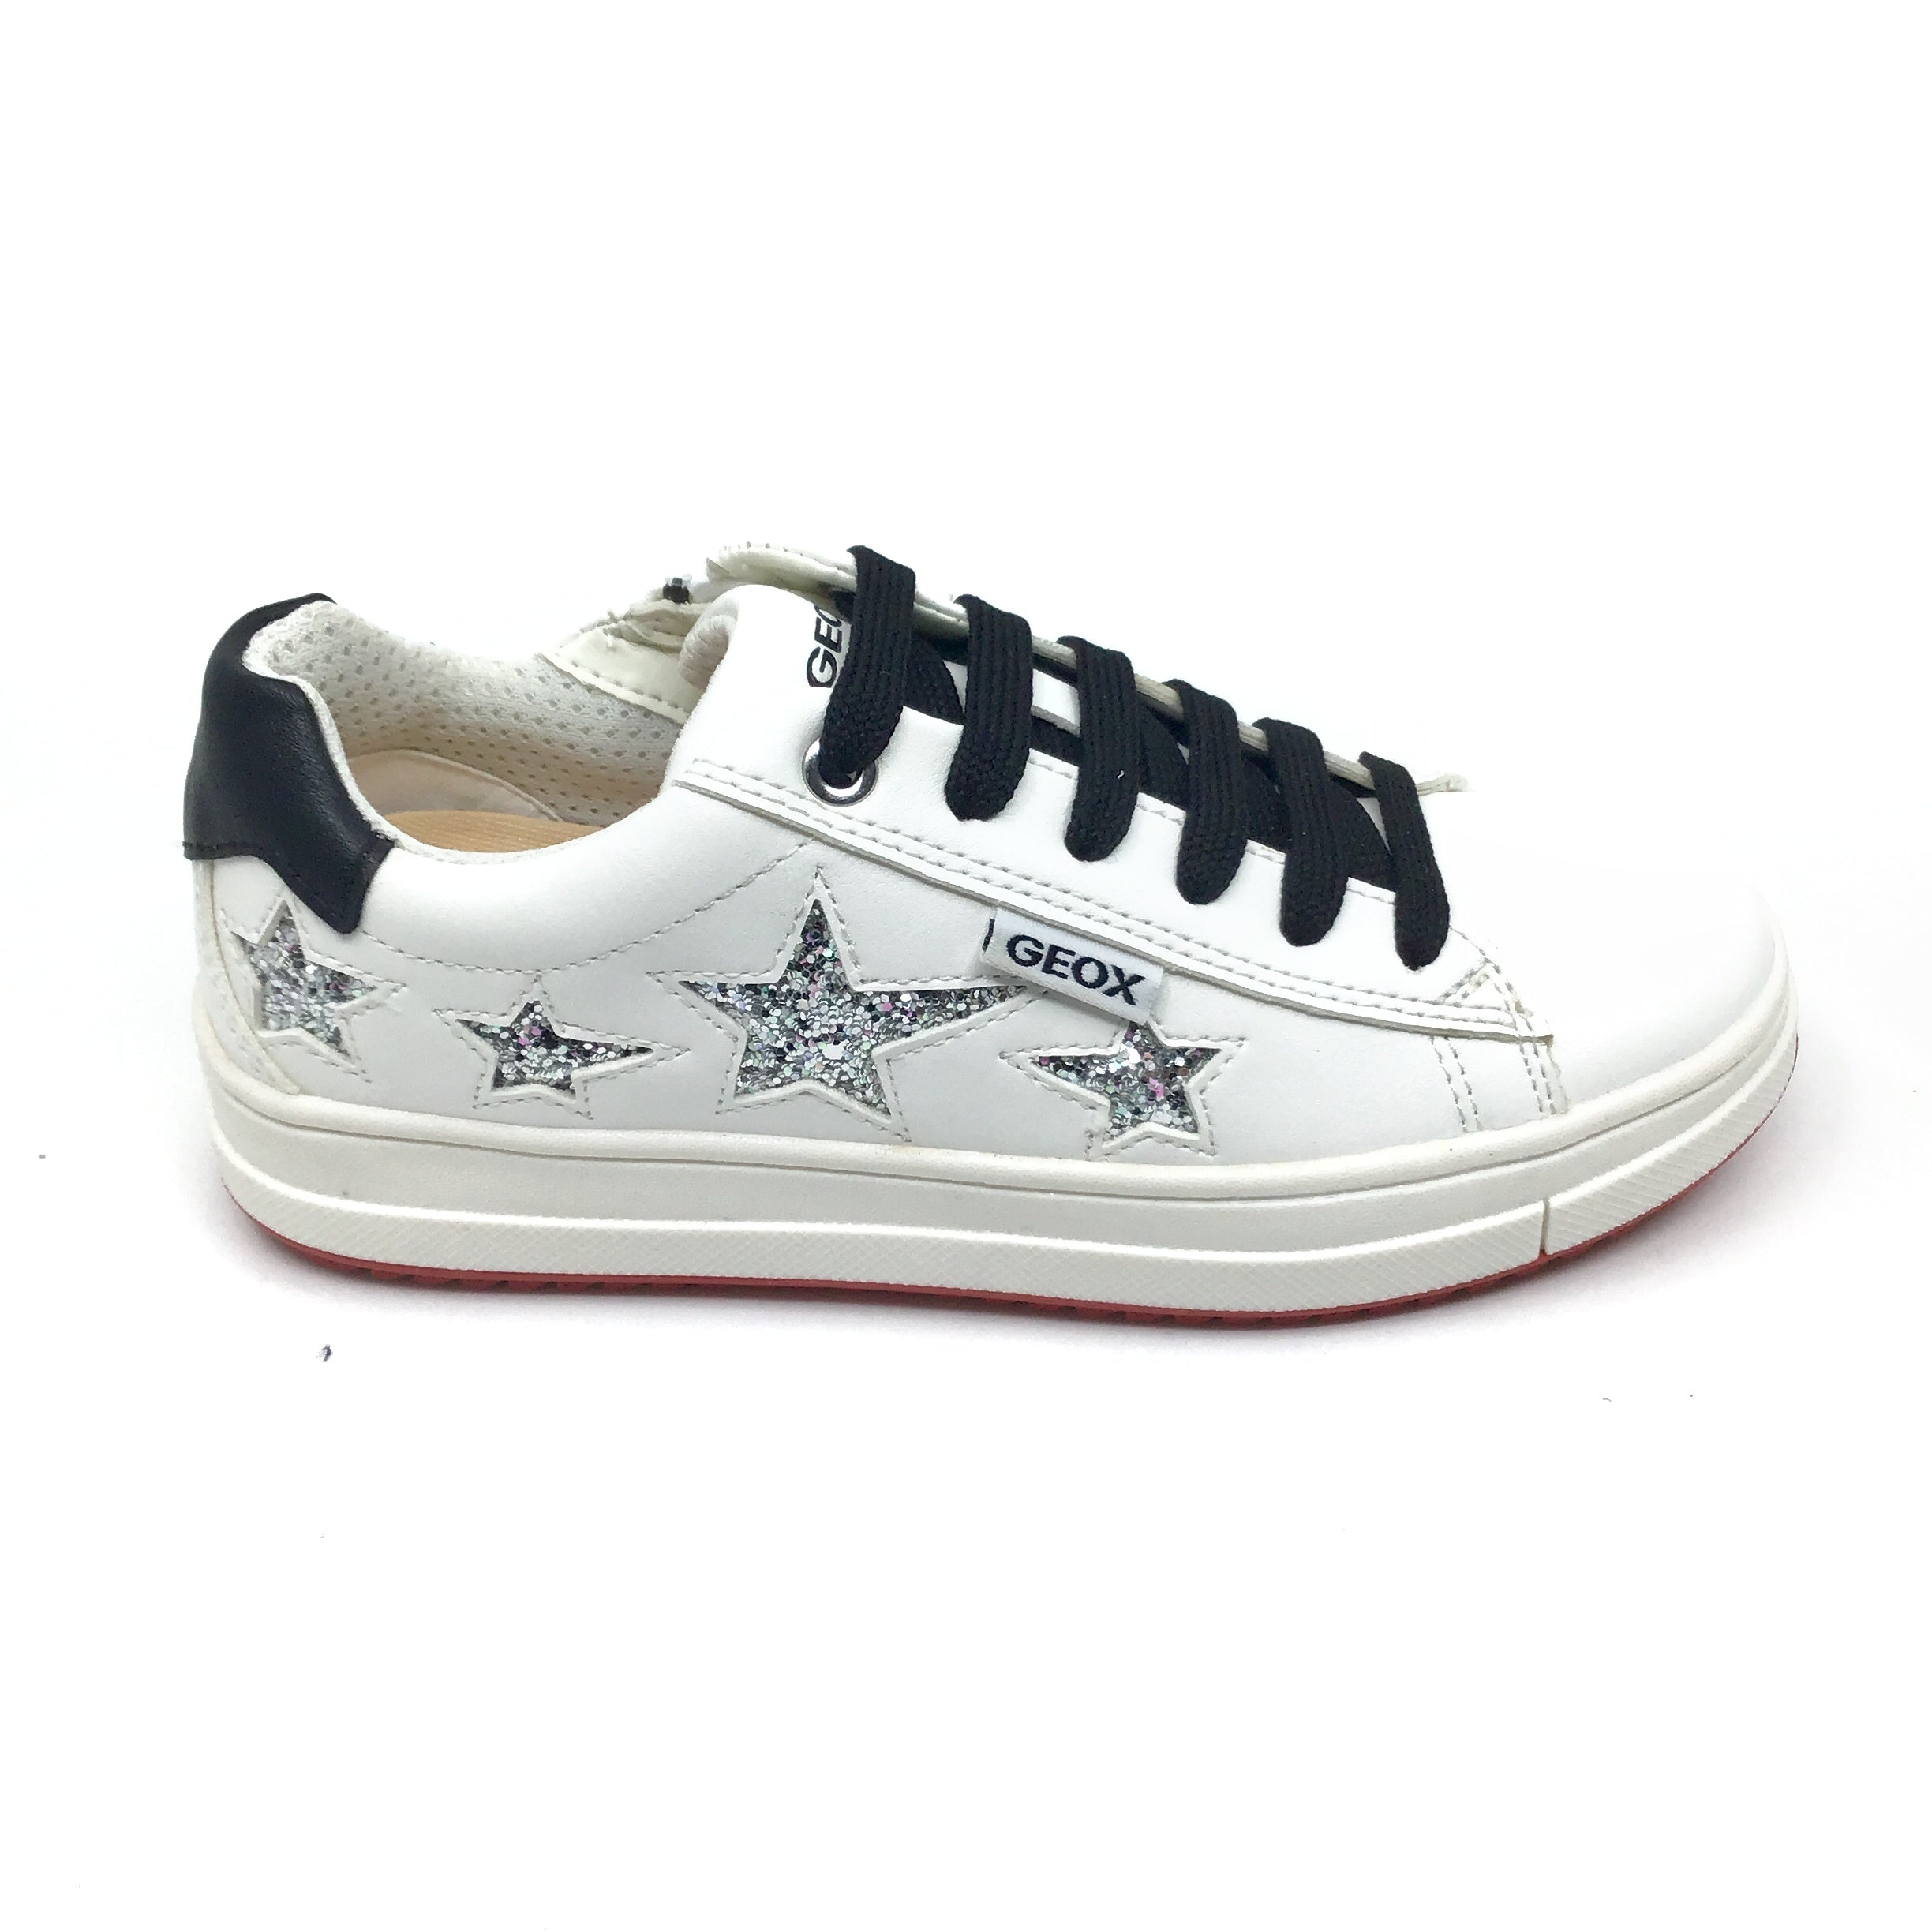 Geox White Lace Up Sneaker with Silver Stars